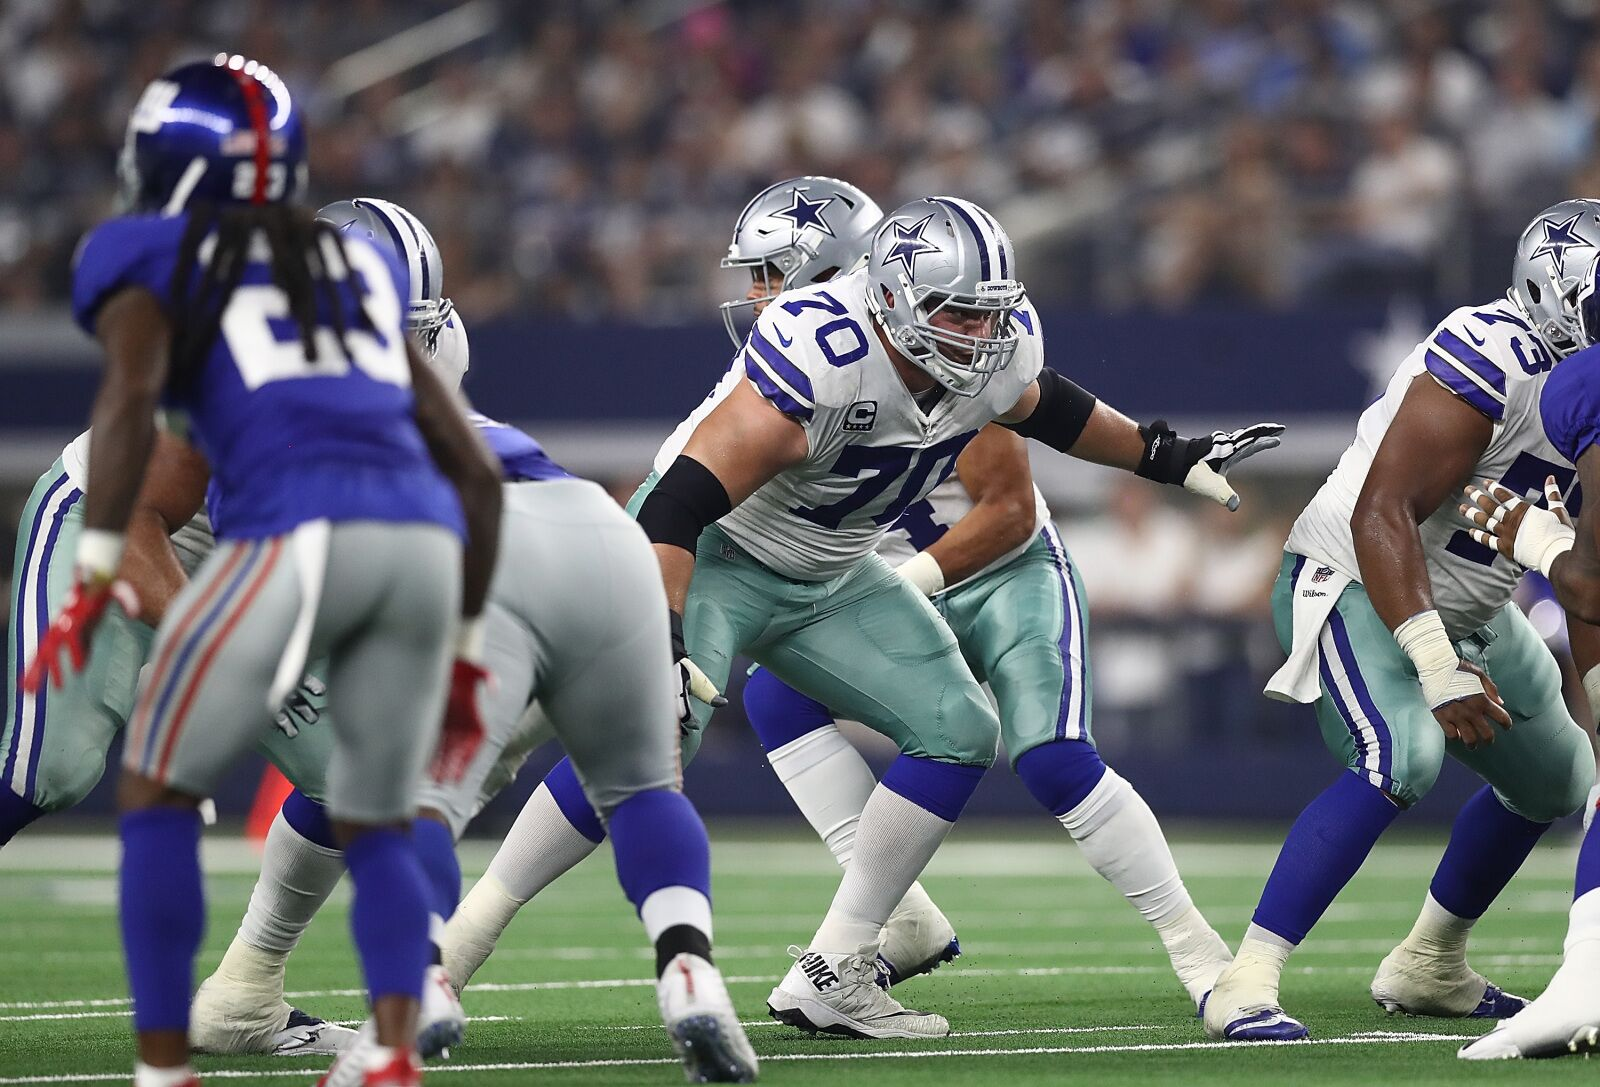 Dallas Cowboys: Is it Time to Rebuild the Offensive Line?